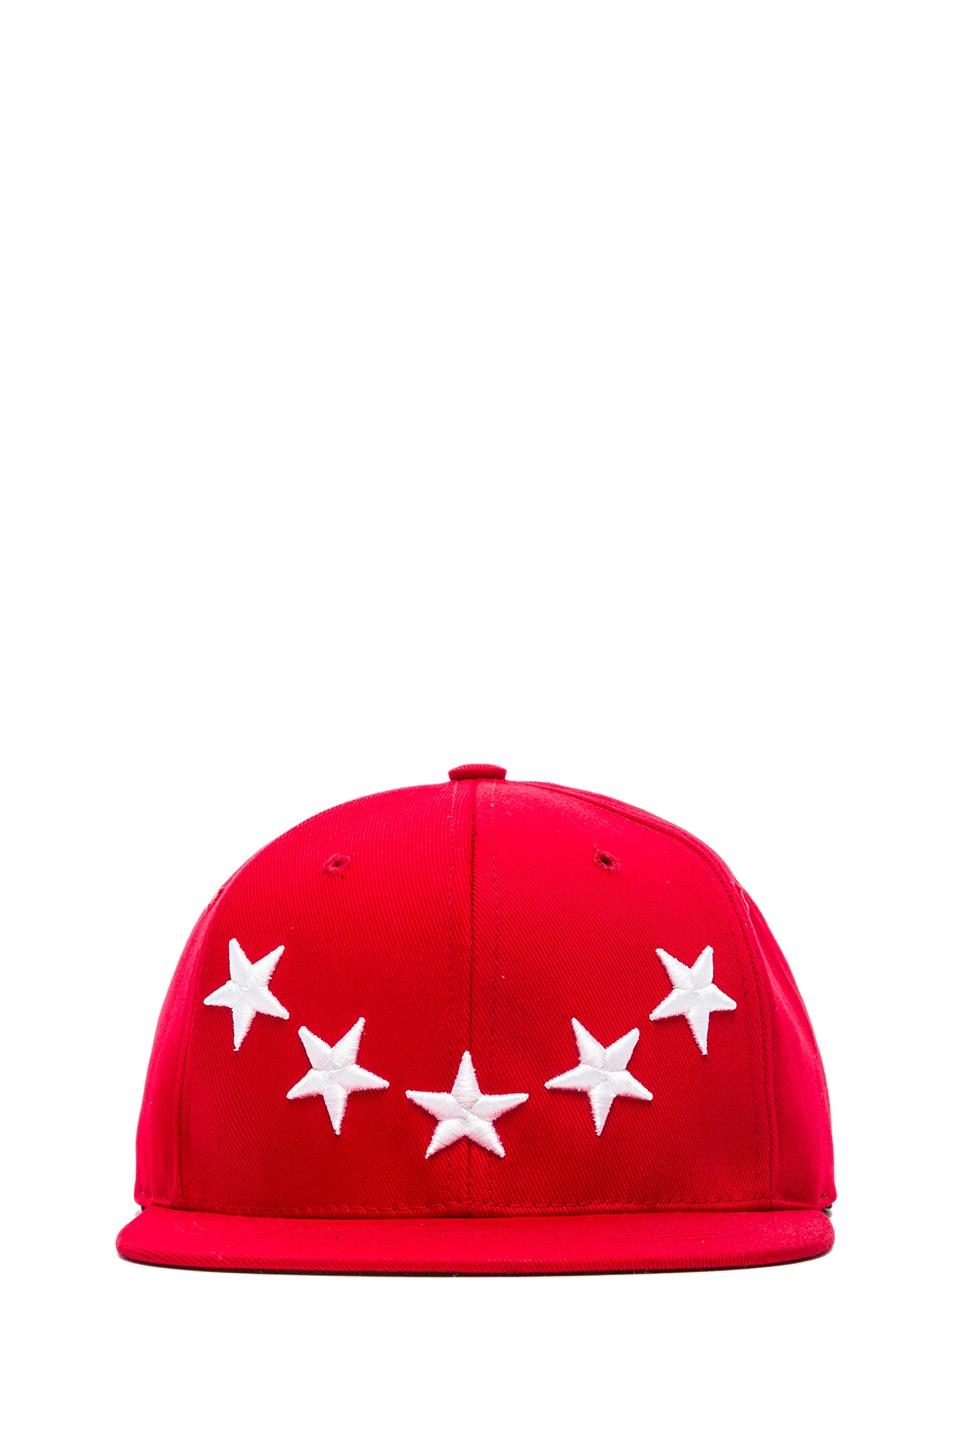 40 OZ NY Stars Snapback in Red